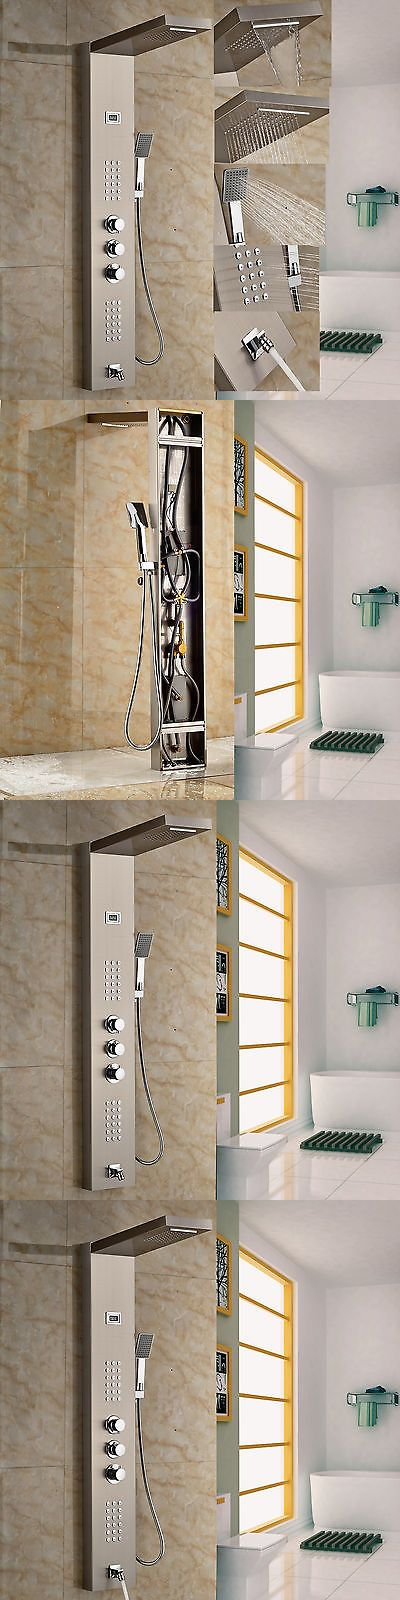 Shower Panels and Massagers 121849: Brushed Nickel Shower Column Tub Jets Hand Shower Unit Thermostatic Shower Panel -> BUY IT NOW ONLY: $129 on eBay!